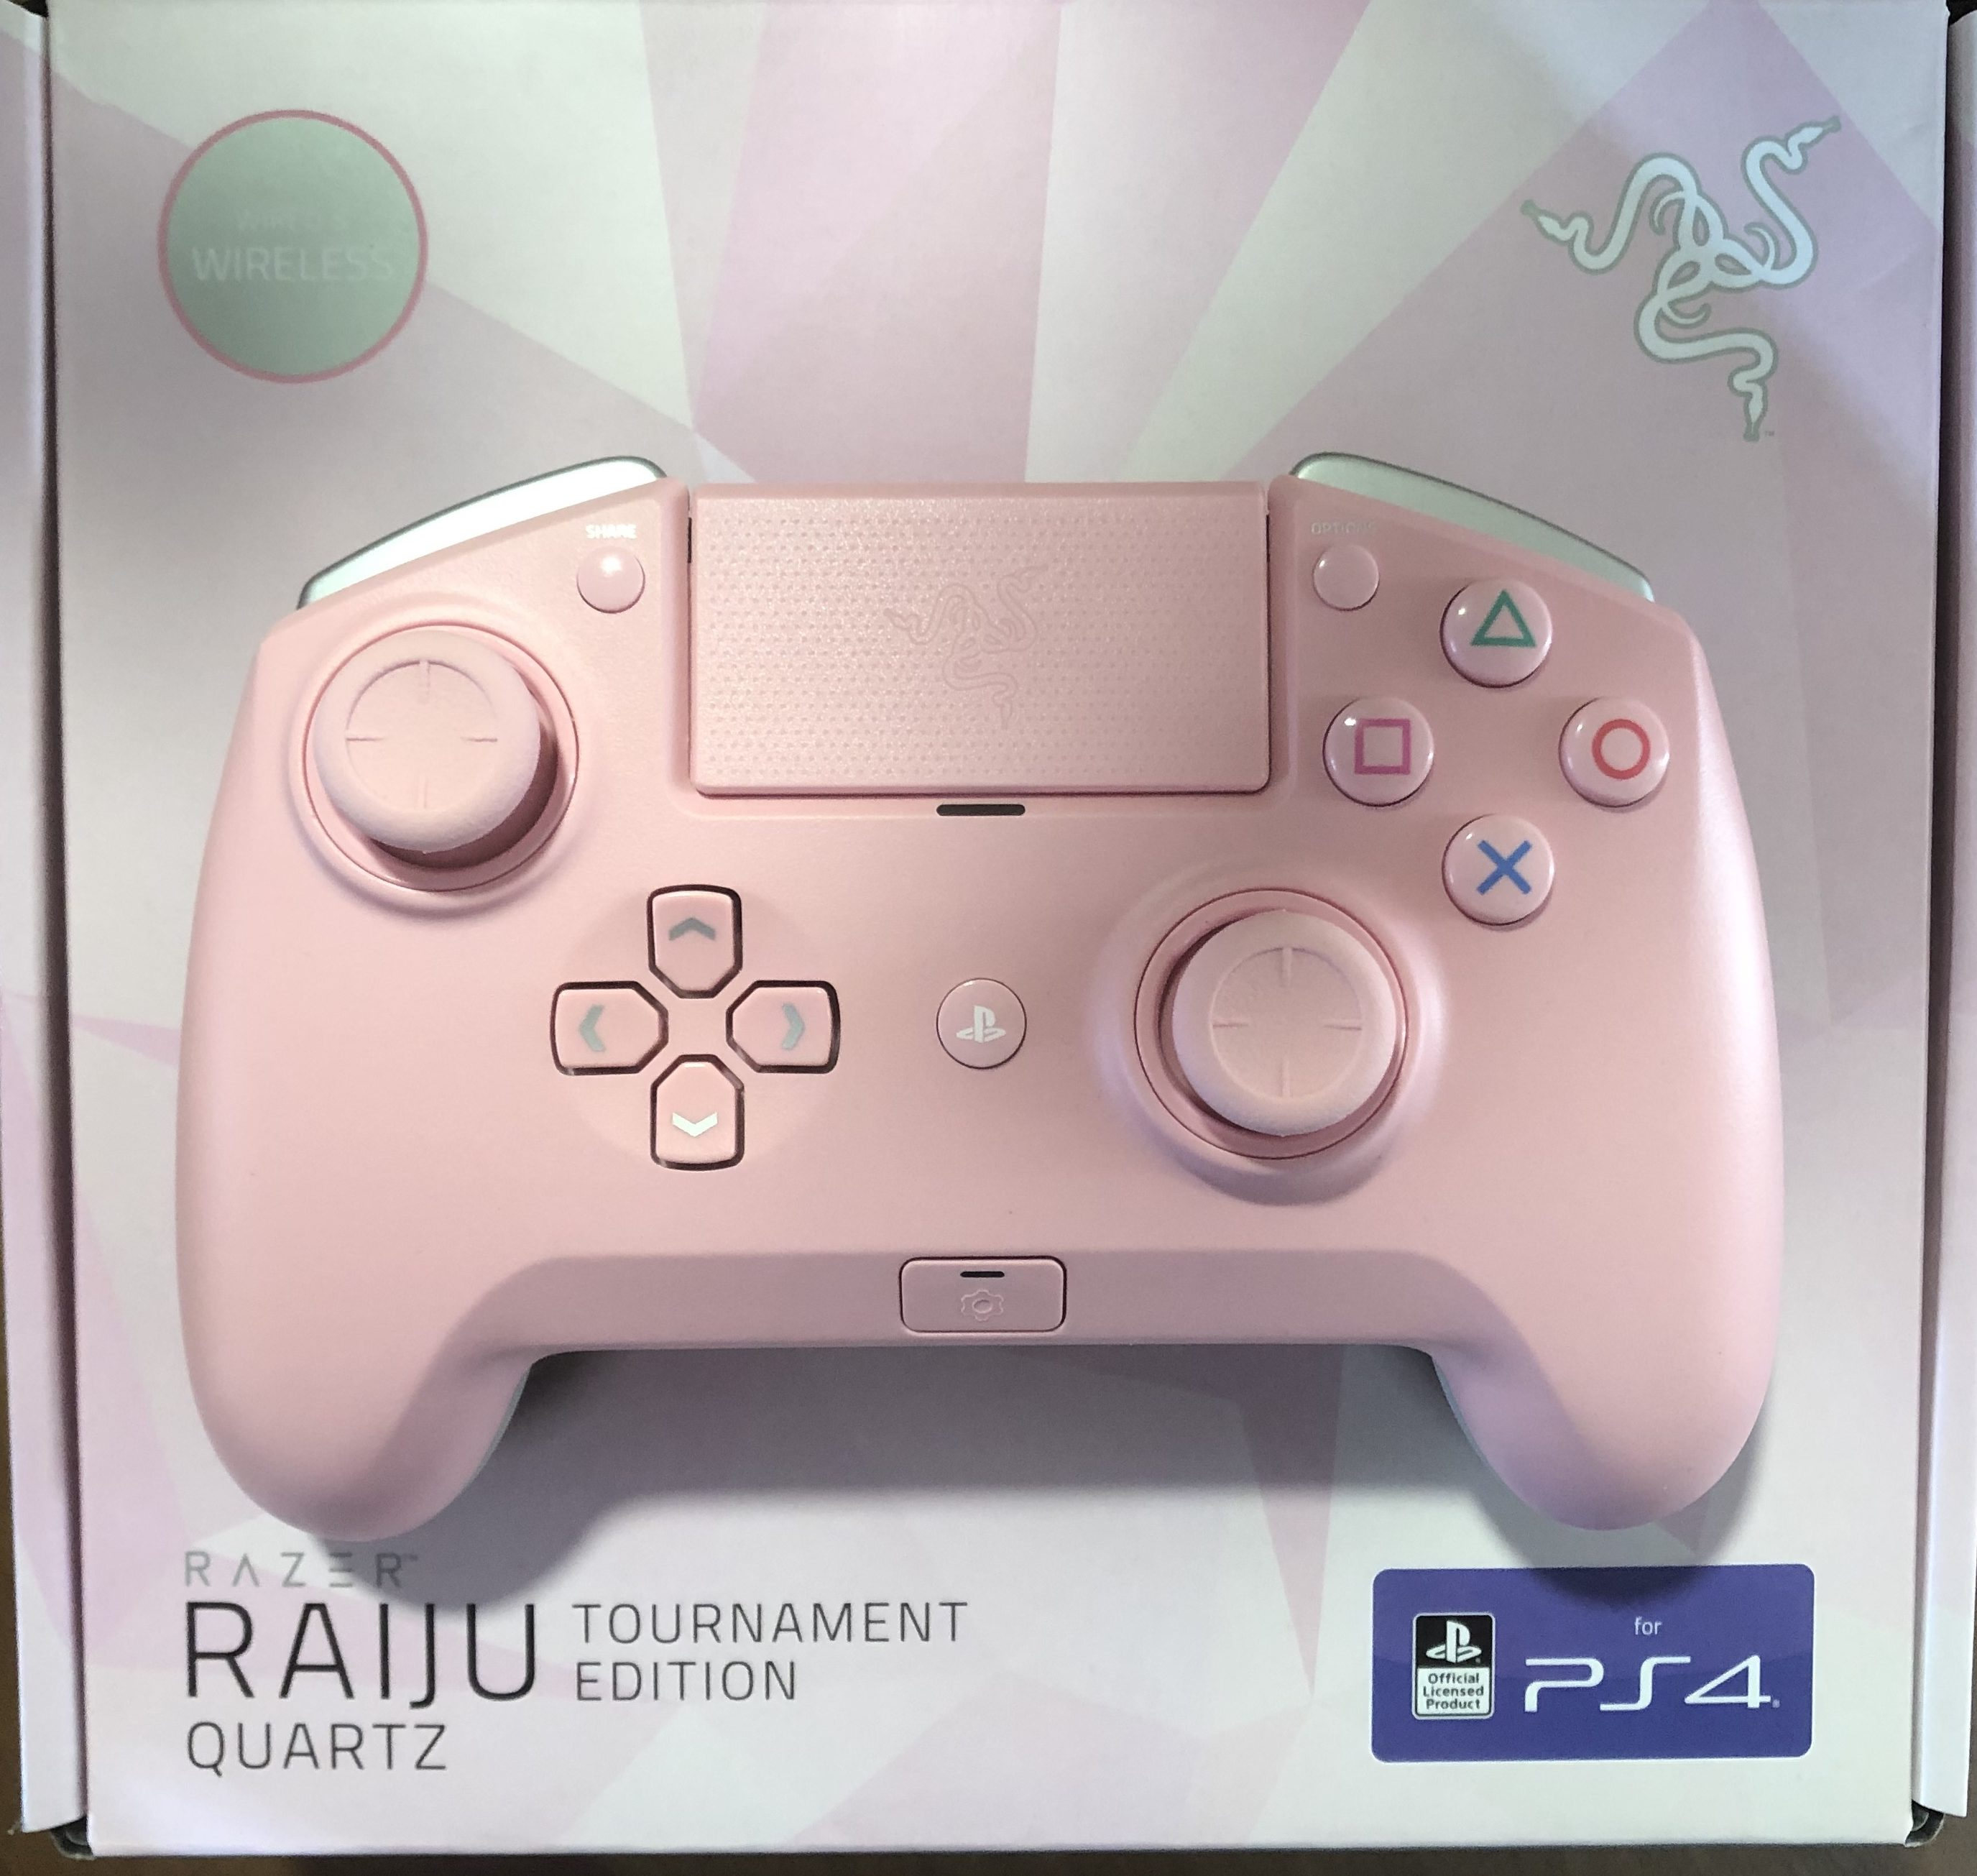 Razer Raiju Tournament Edition Analizamos Uno De Los Mejores Mandos Del Mercado Rincongeek Milliseconds count in competitive gaming, and the razer raiju tournament edition knows that they mean the difference between outgunning an opponent or missing your window for a combo. razer raiju tournament edition